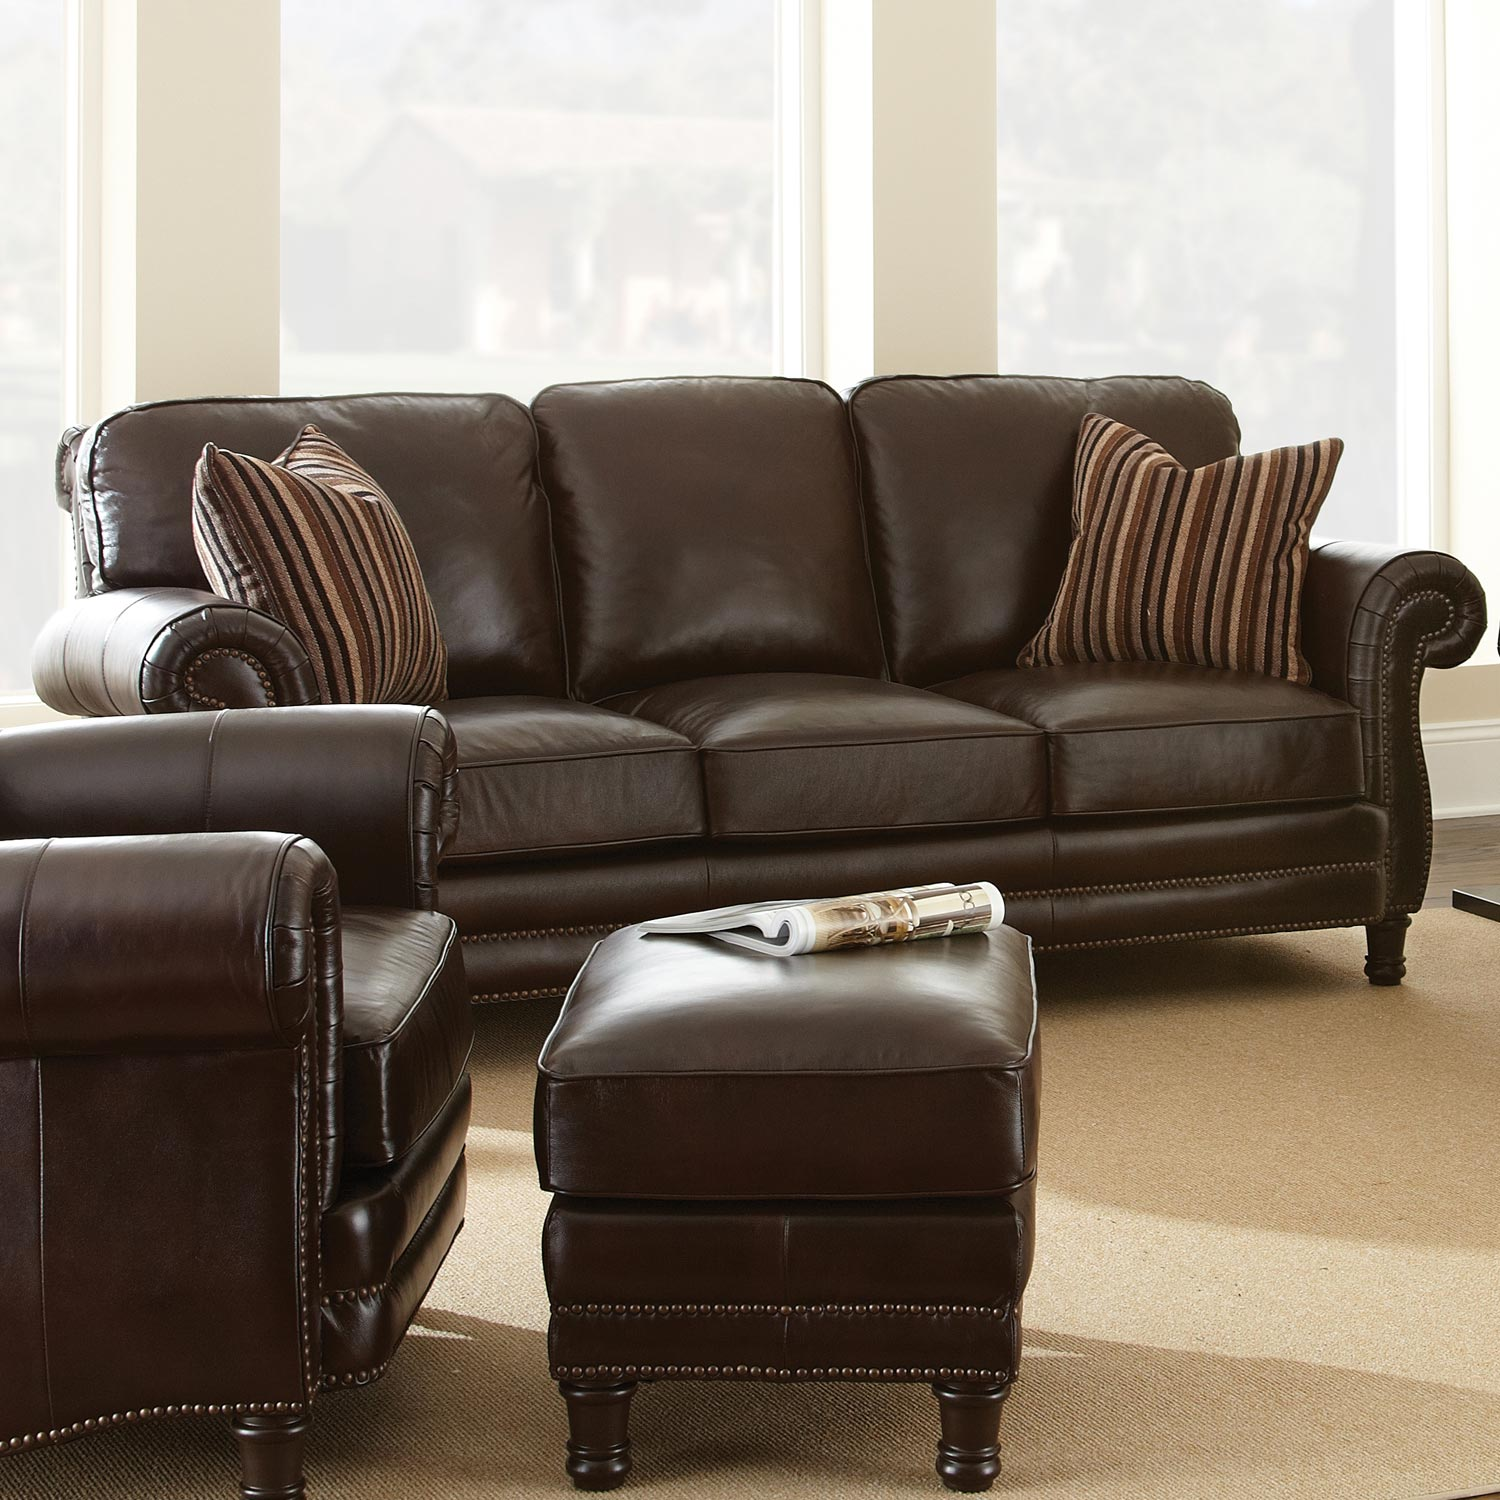 chateau 3 piece leather sofa set antique chocolate brown dcg stores